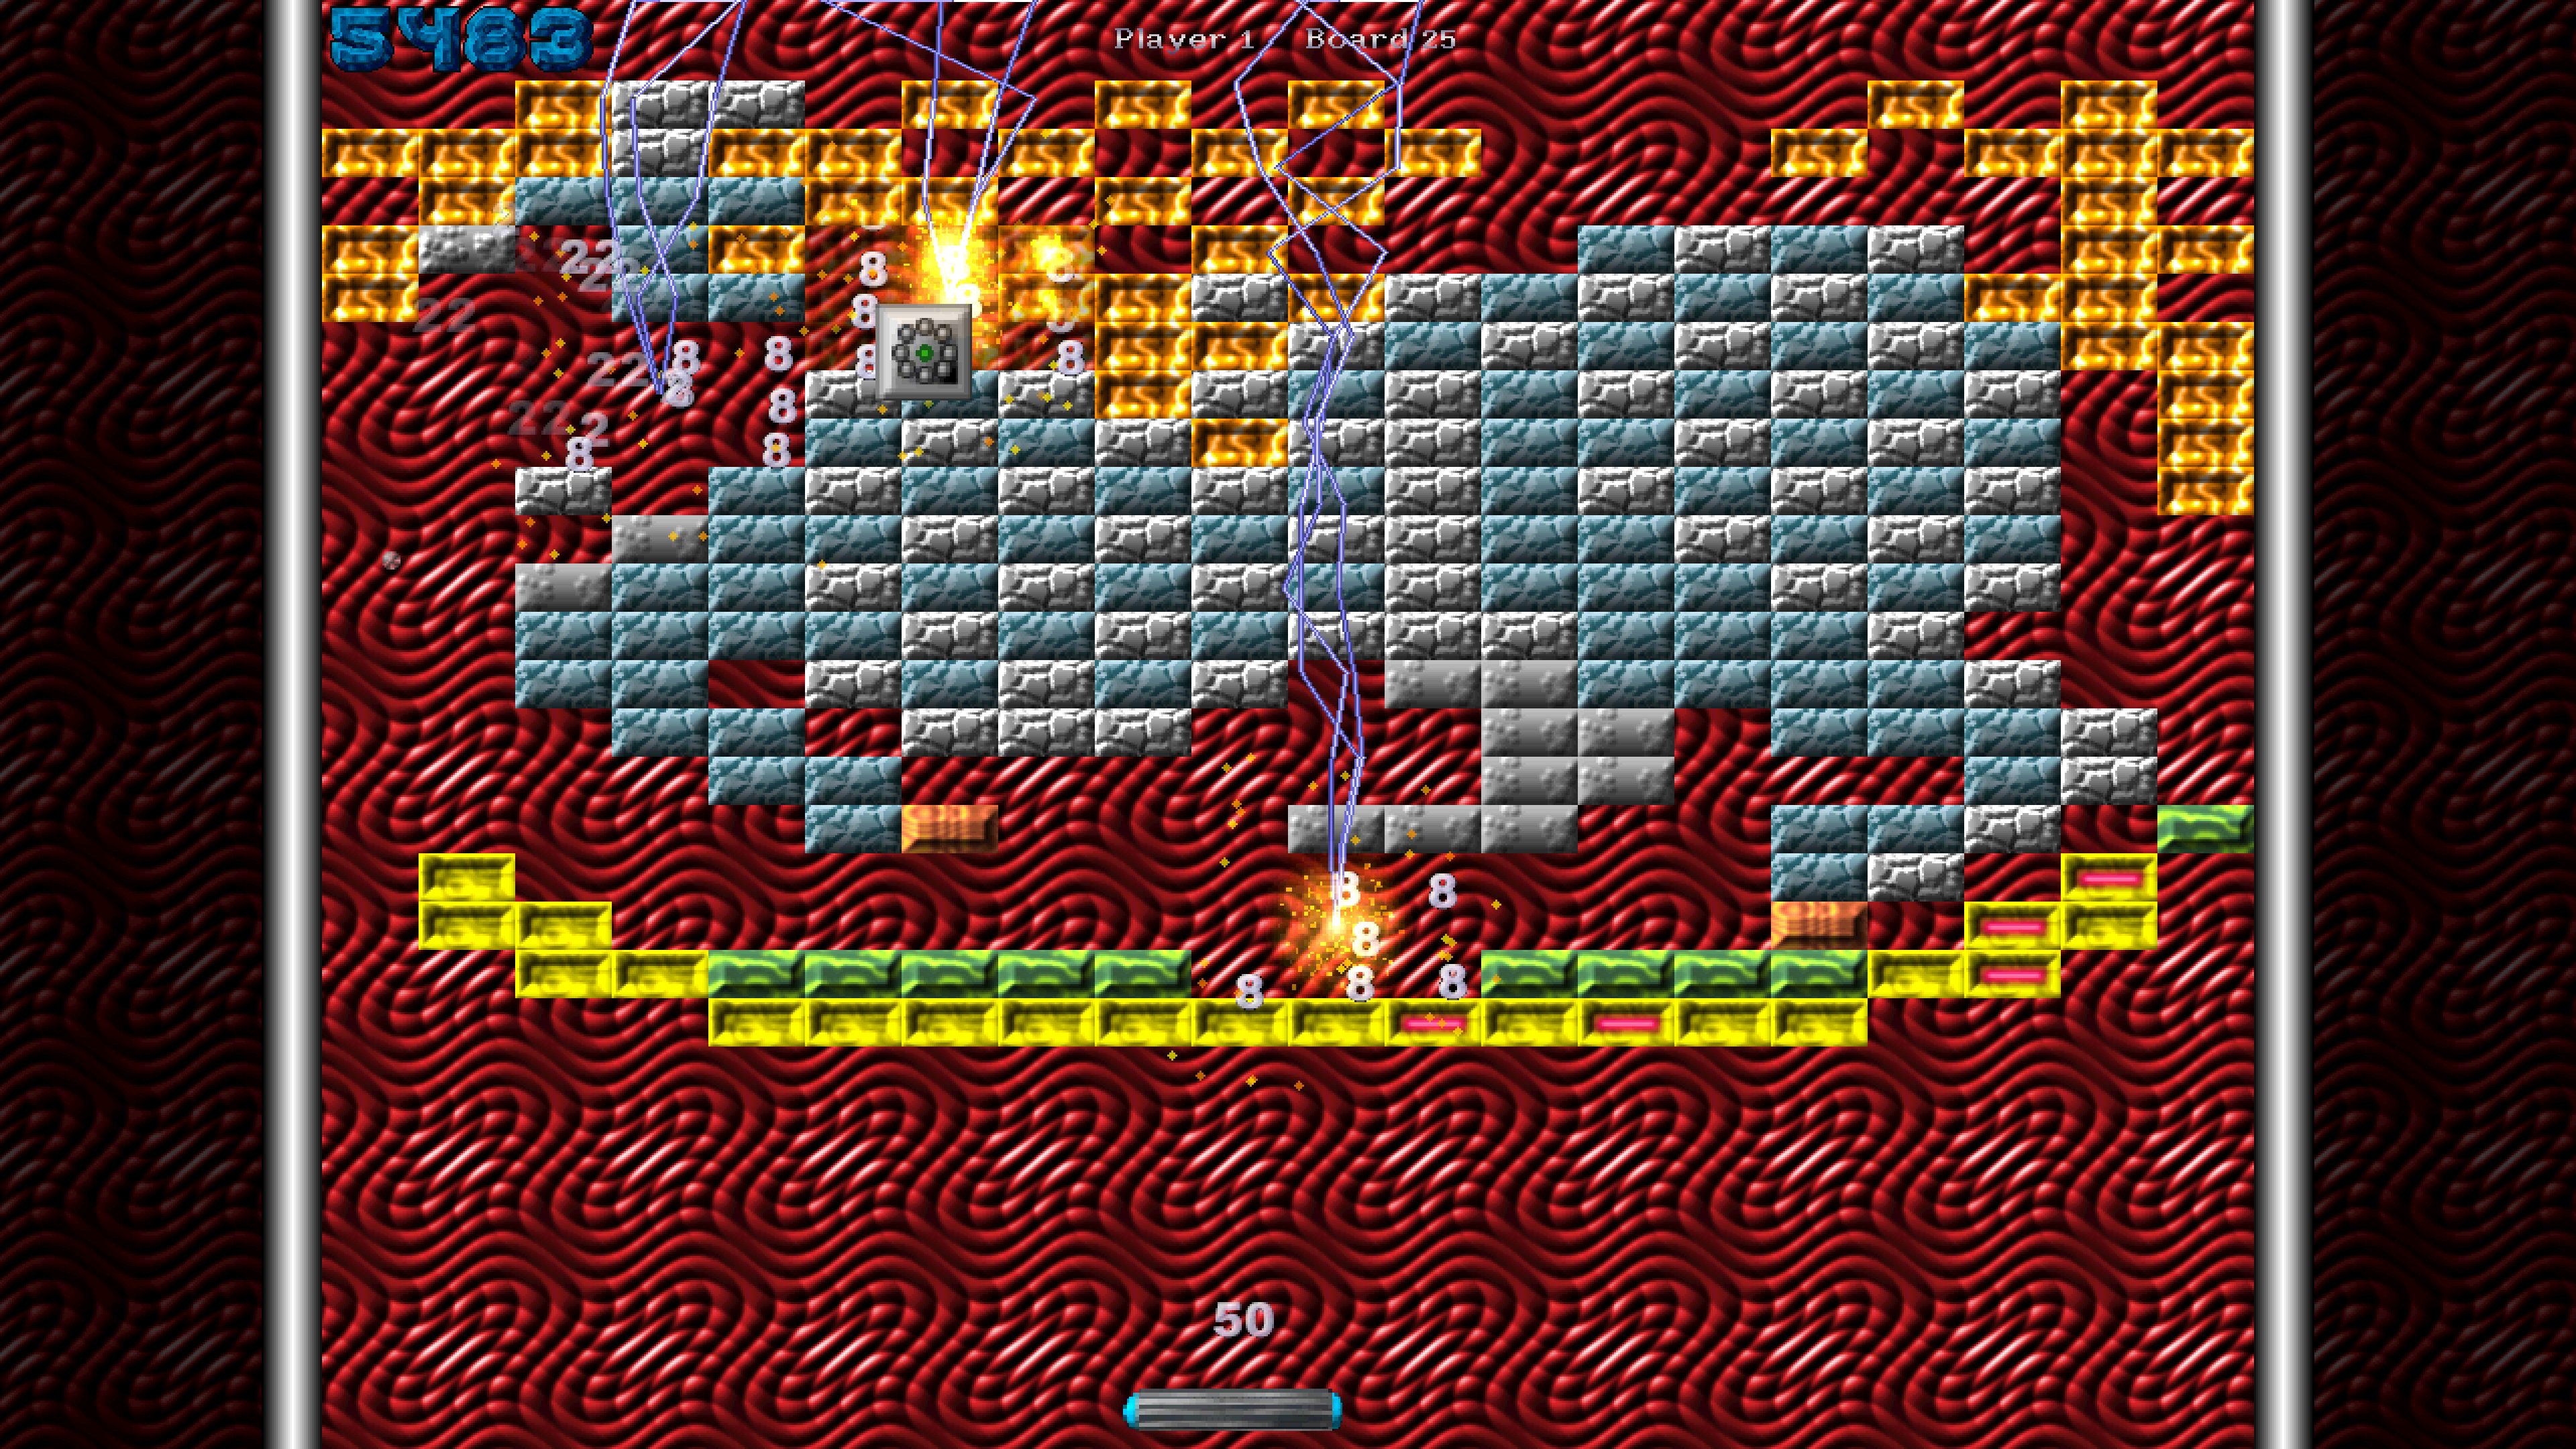 Dx-ball 2 classic pack buy and download on gamersgate.